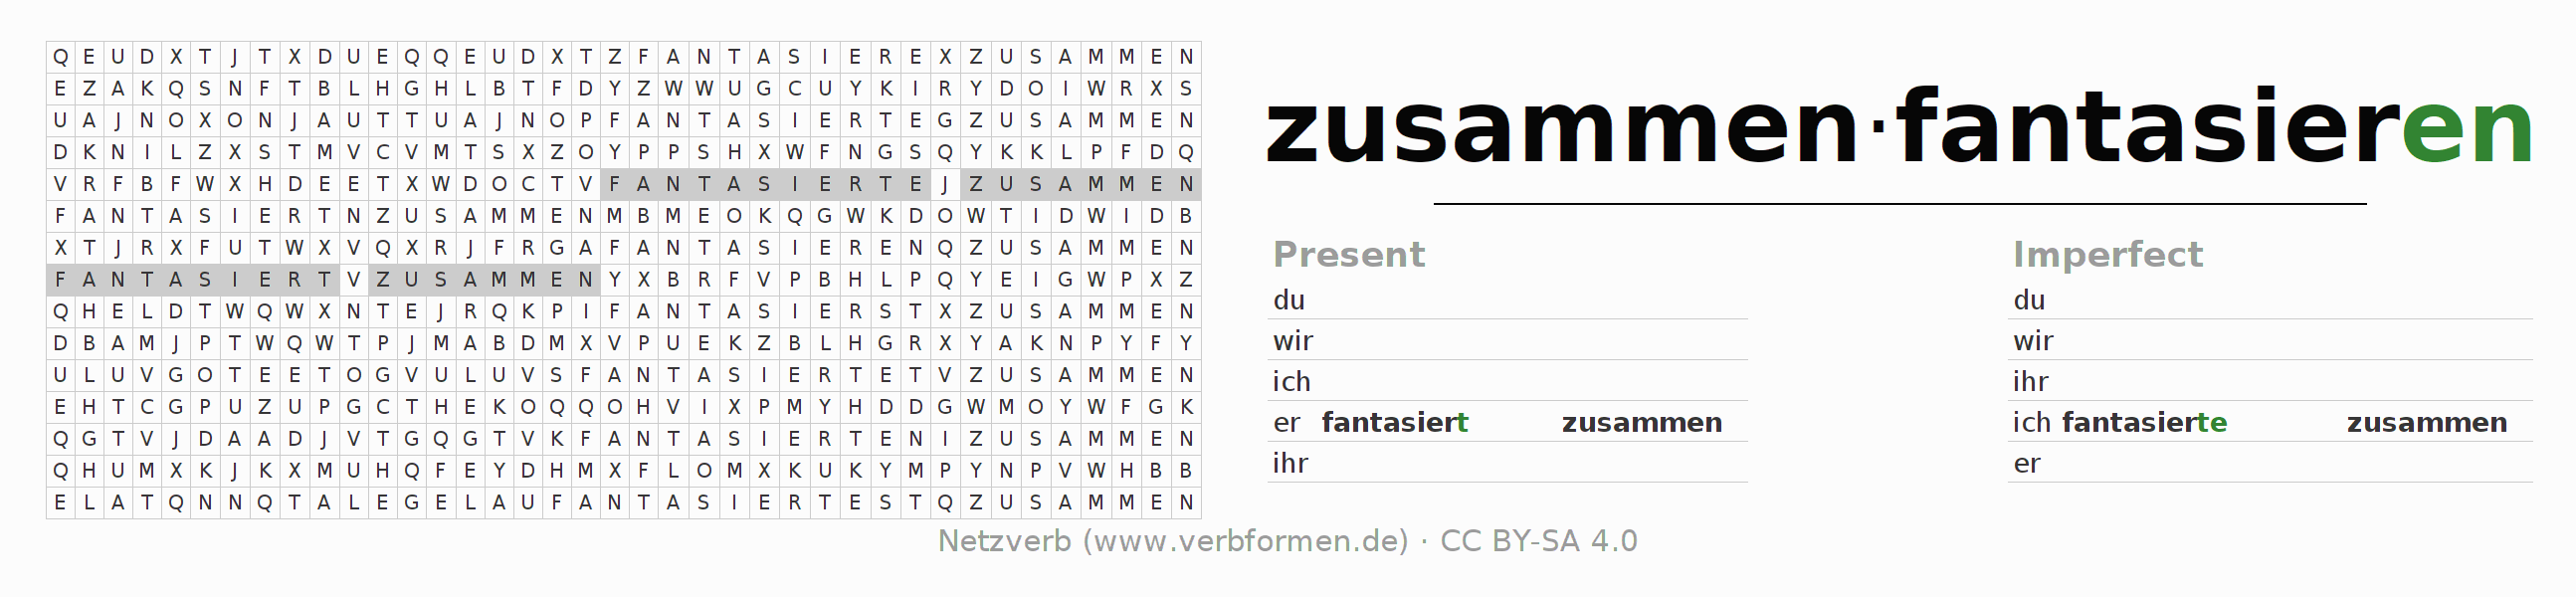 Word search puzzle for the conjugation of the verb zusammenfantasieren